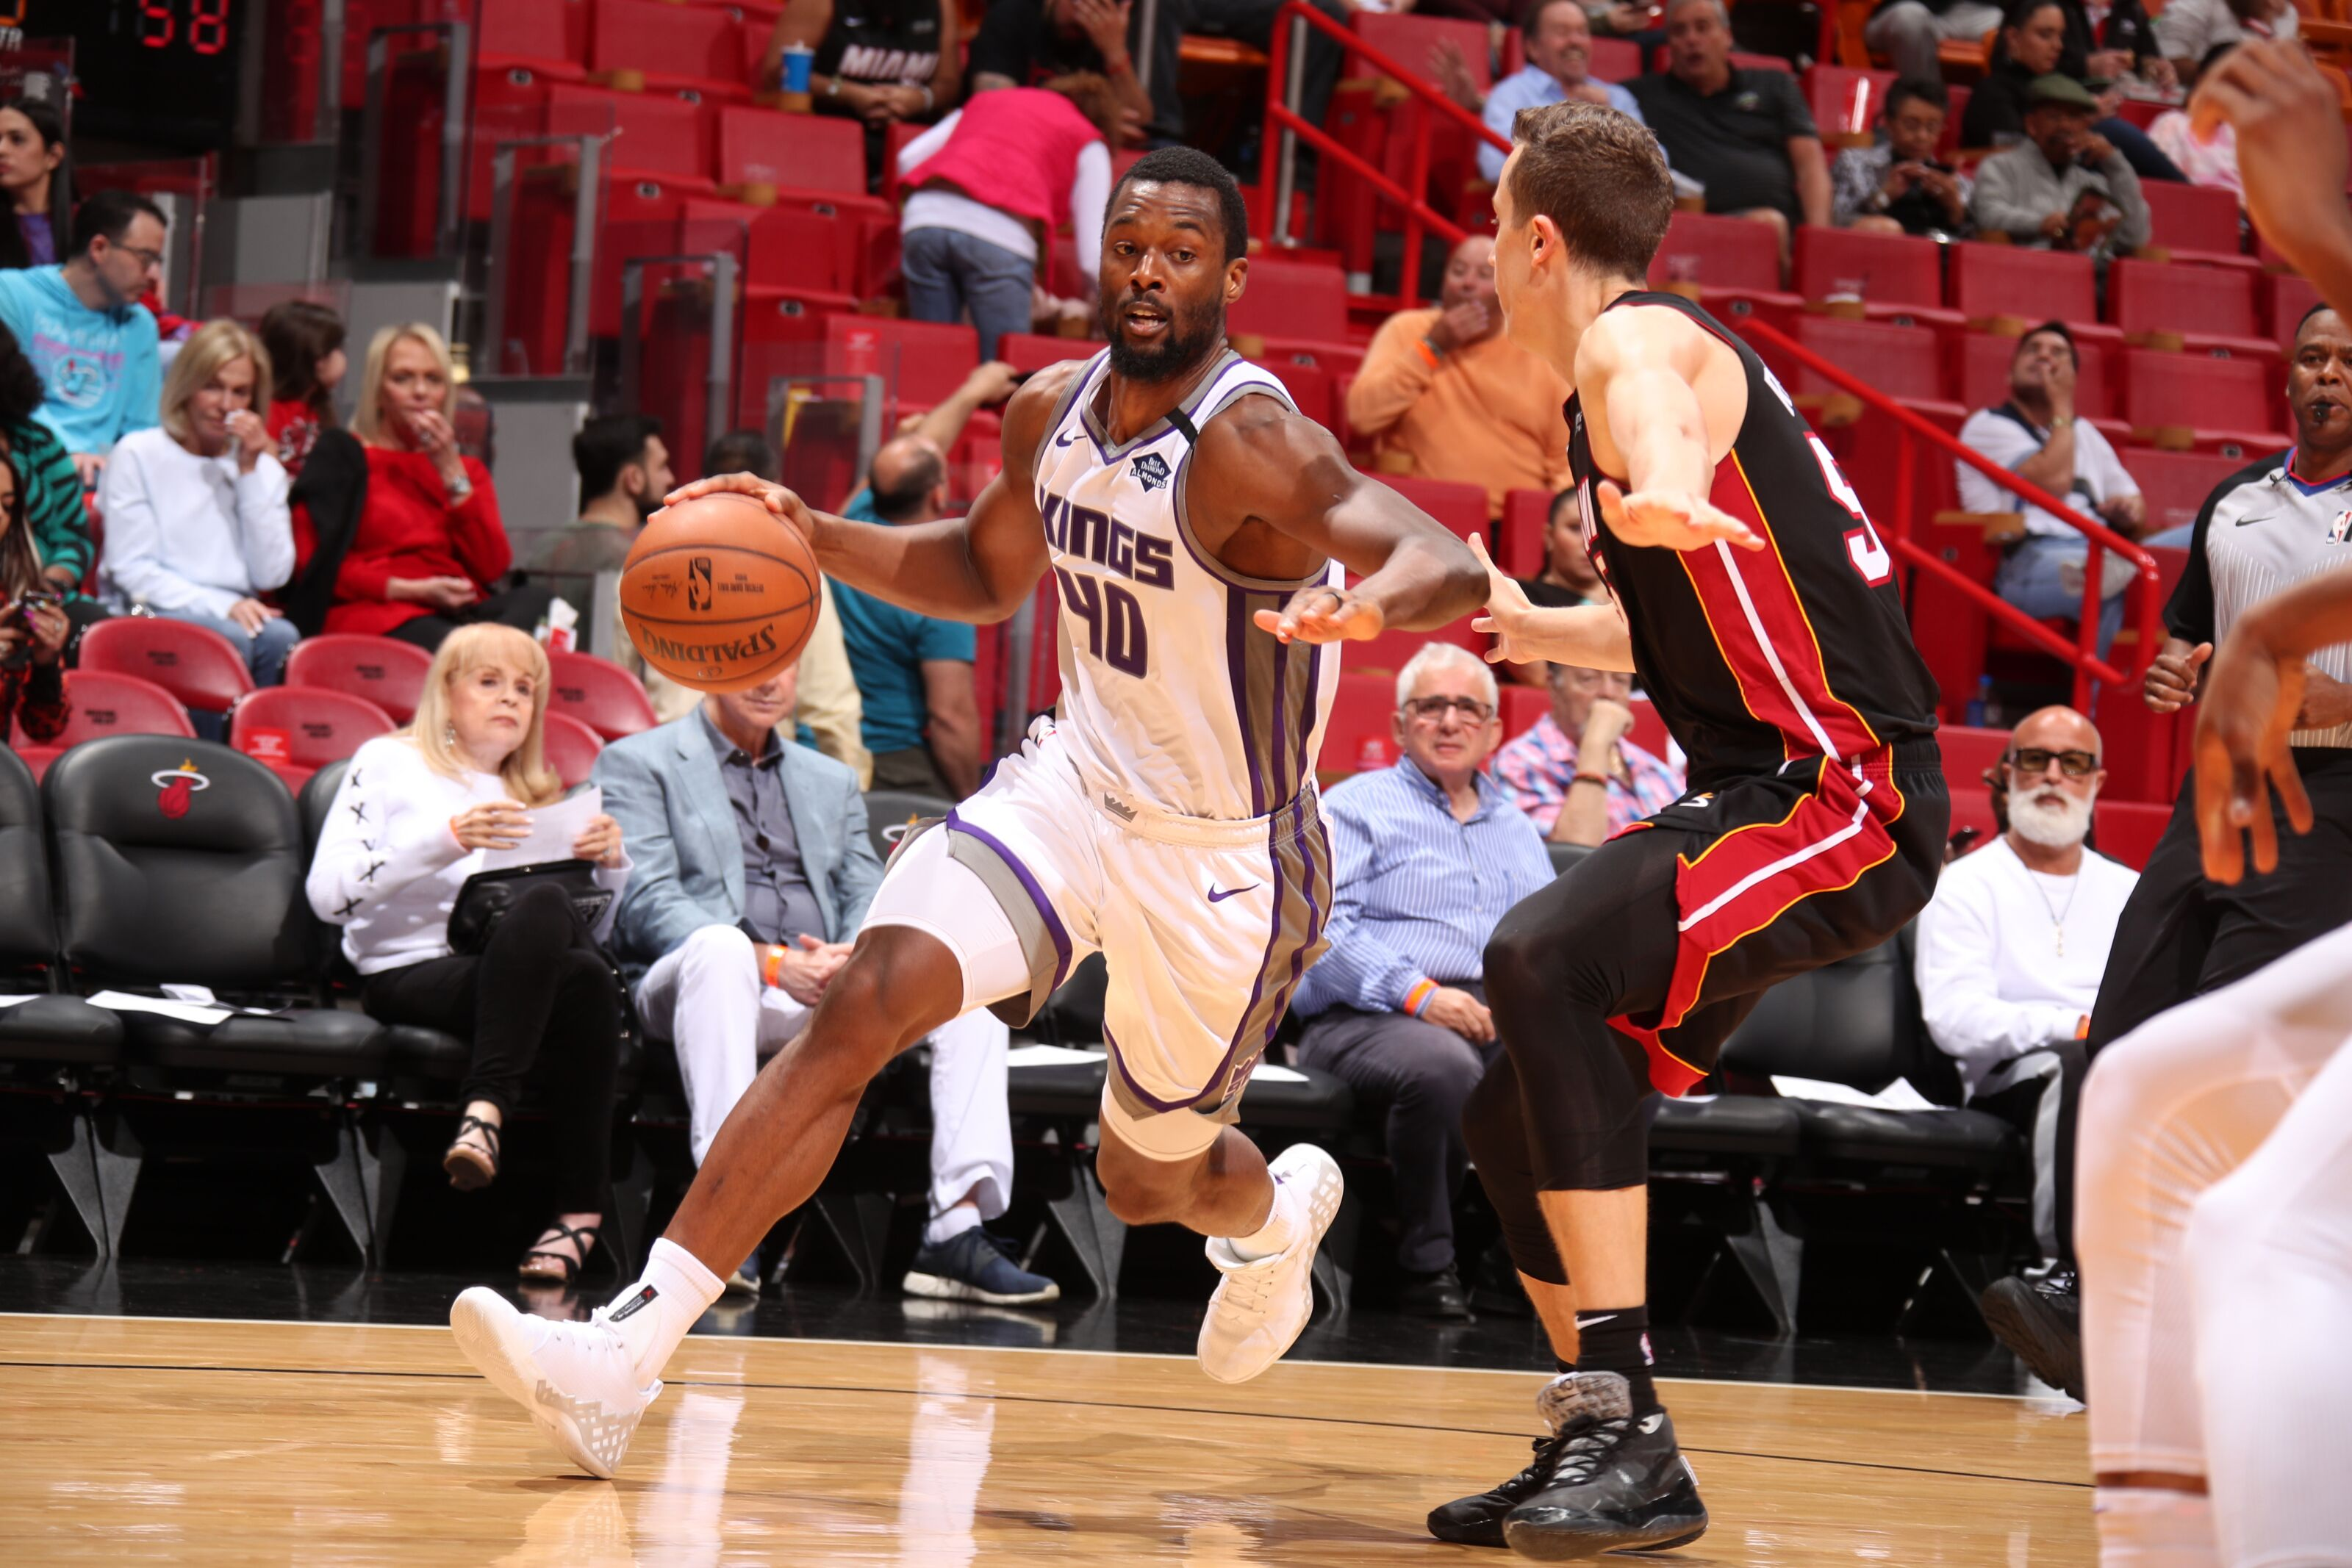 What is long-term cost to Sacramento Kings for Harrison Barnes deal?